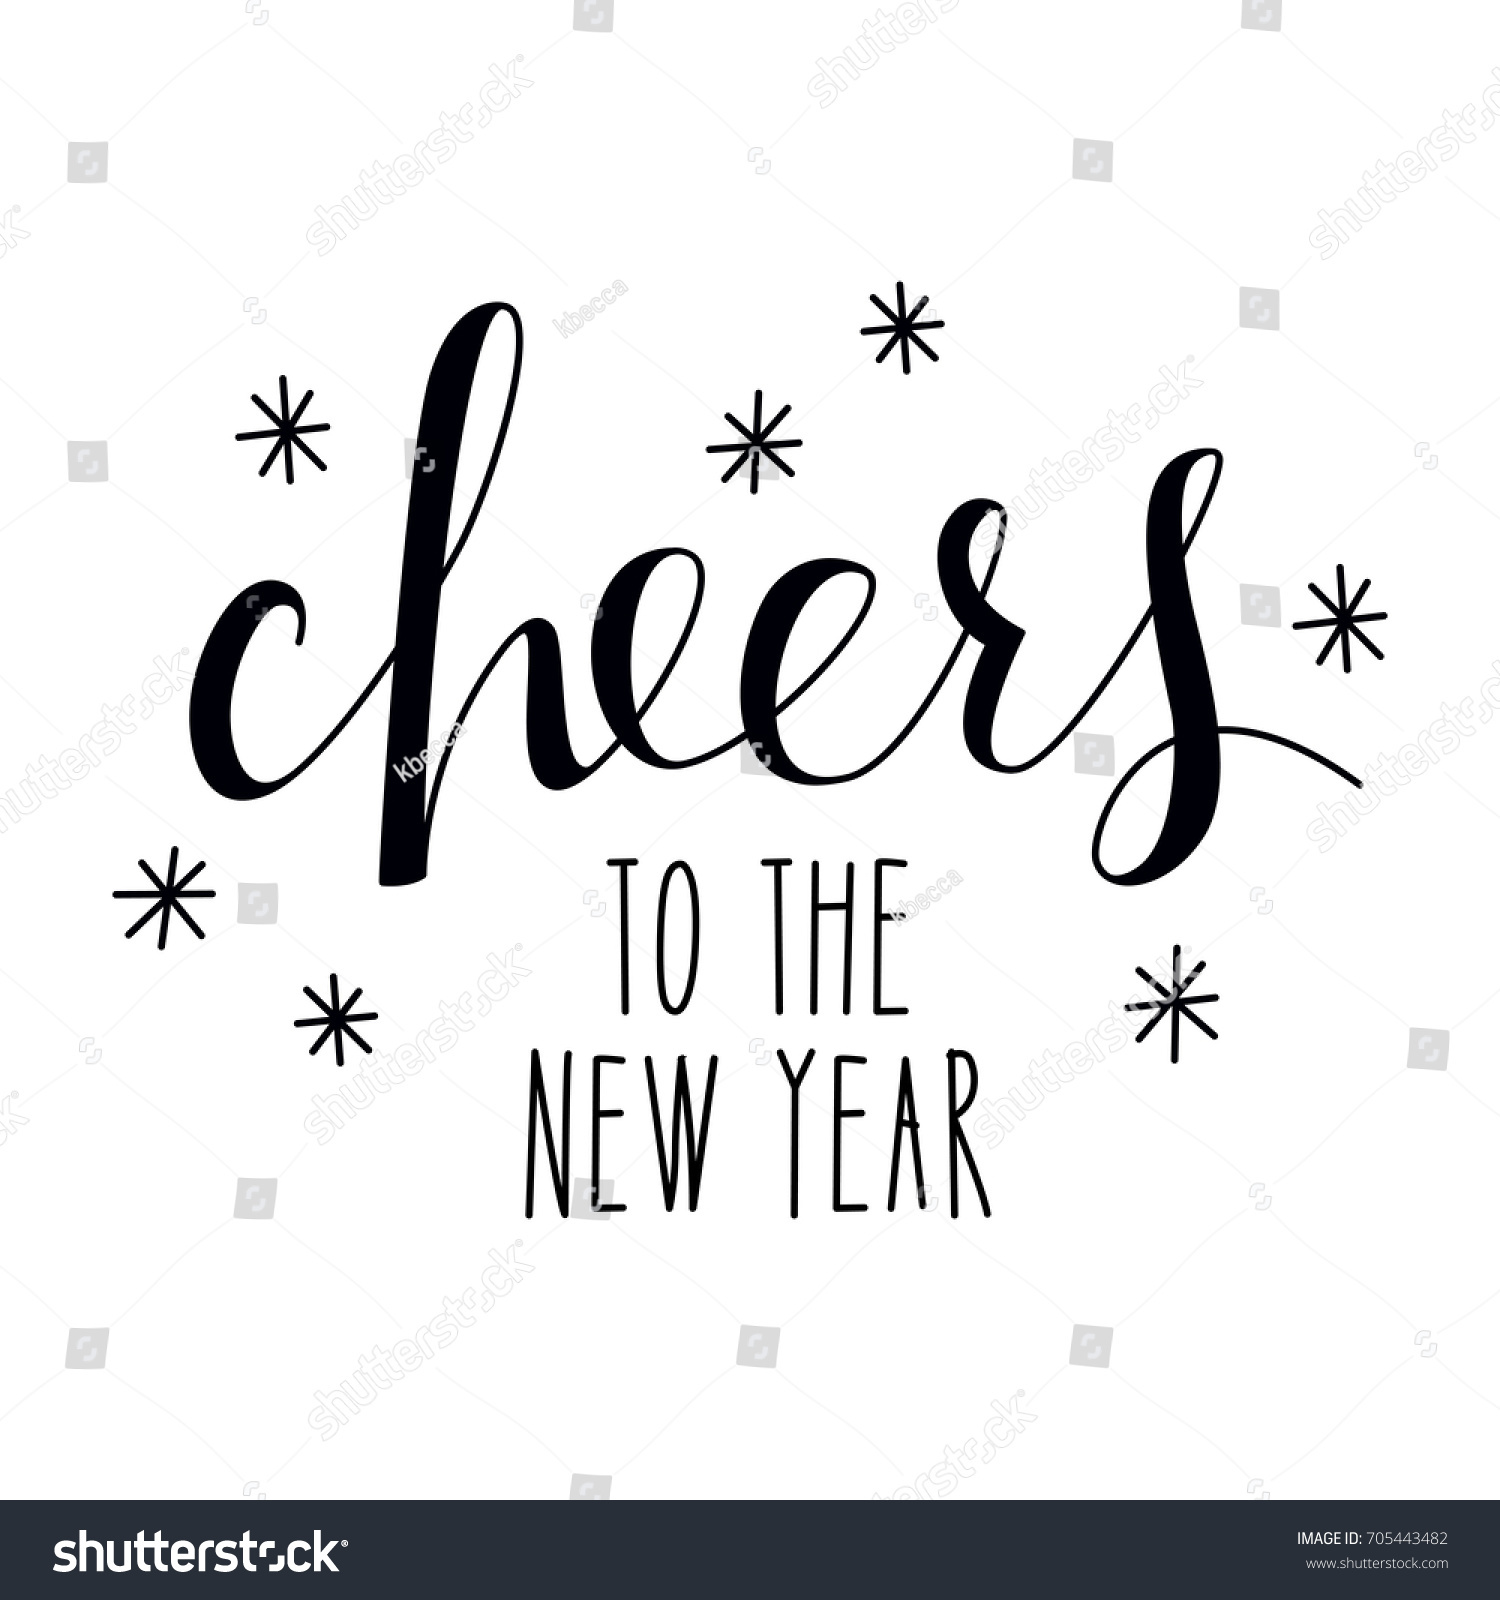 Isolated Hand Lettered Cheers New Year Stock Vector (Royalty Free ...